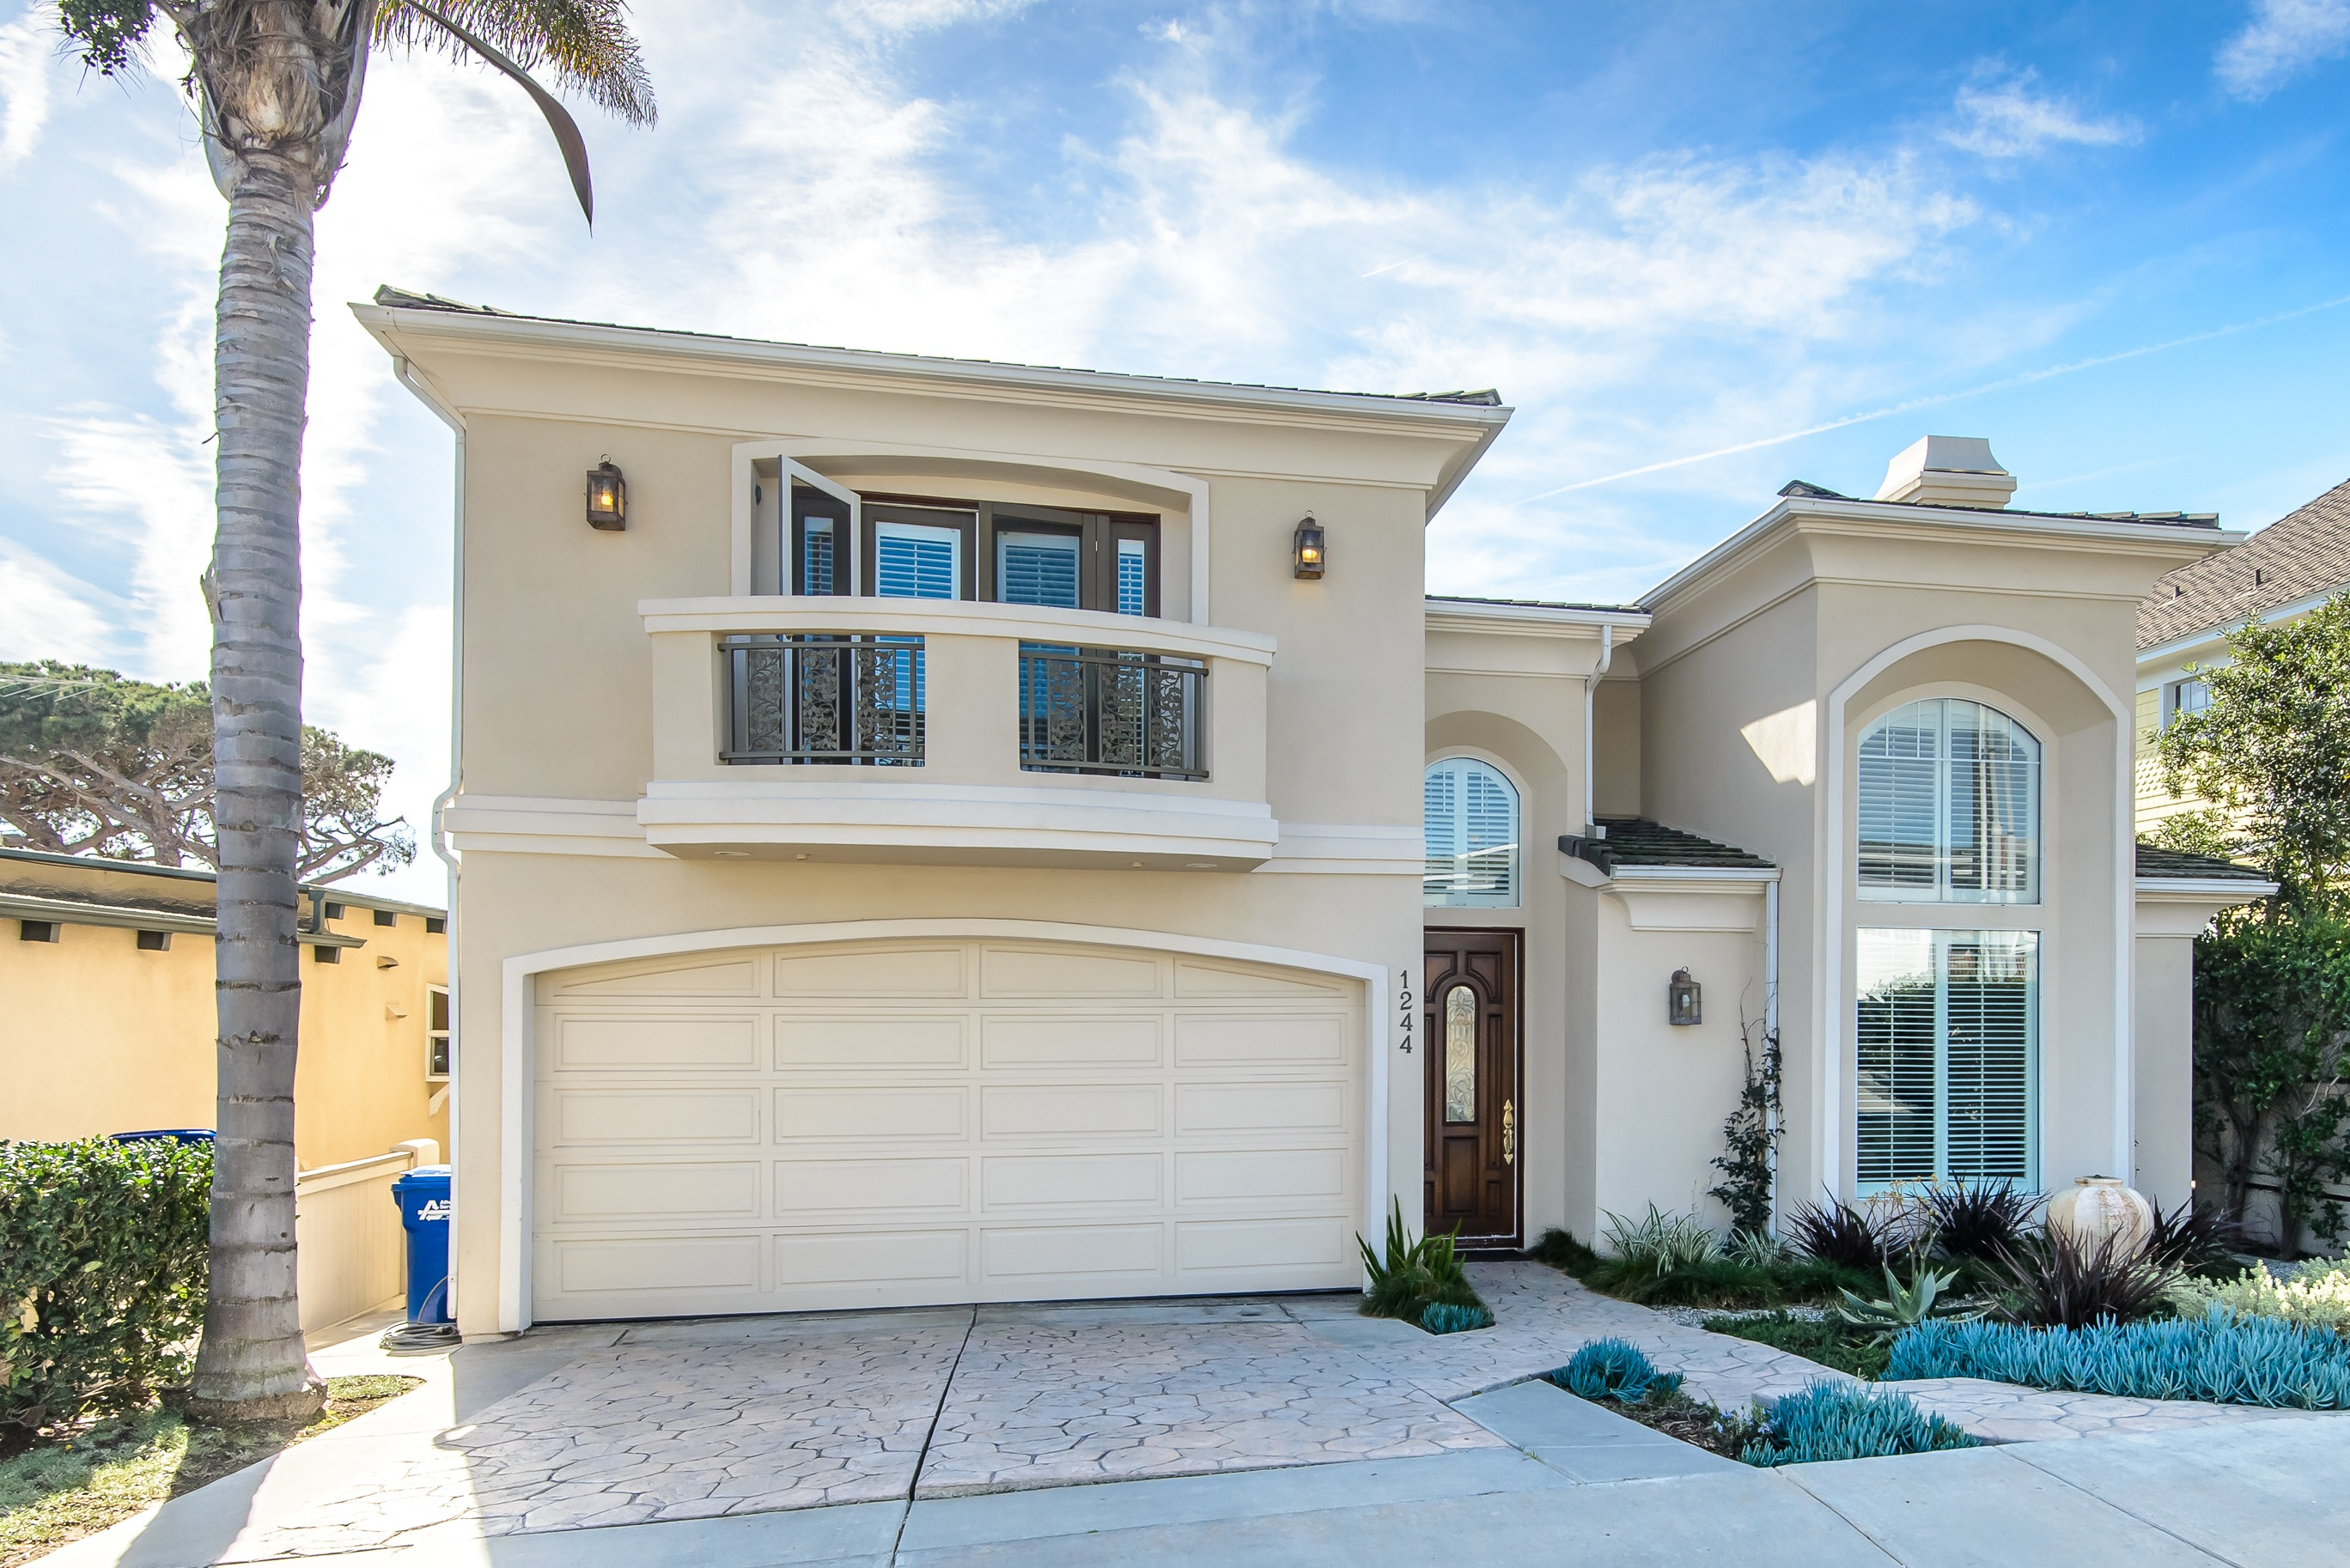 Single Family Home for Sale at 1244 9th Street Hermosa Beach, California, 90254 United States